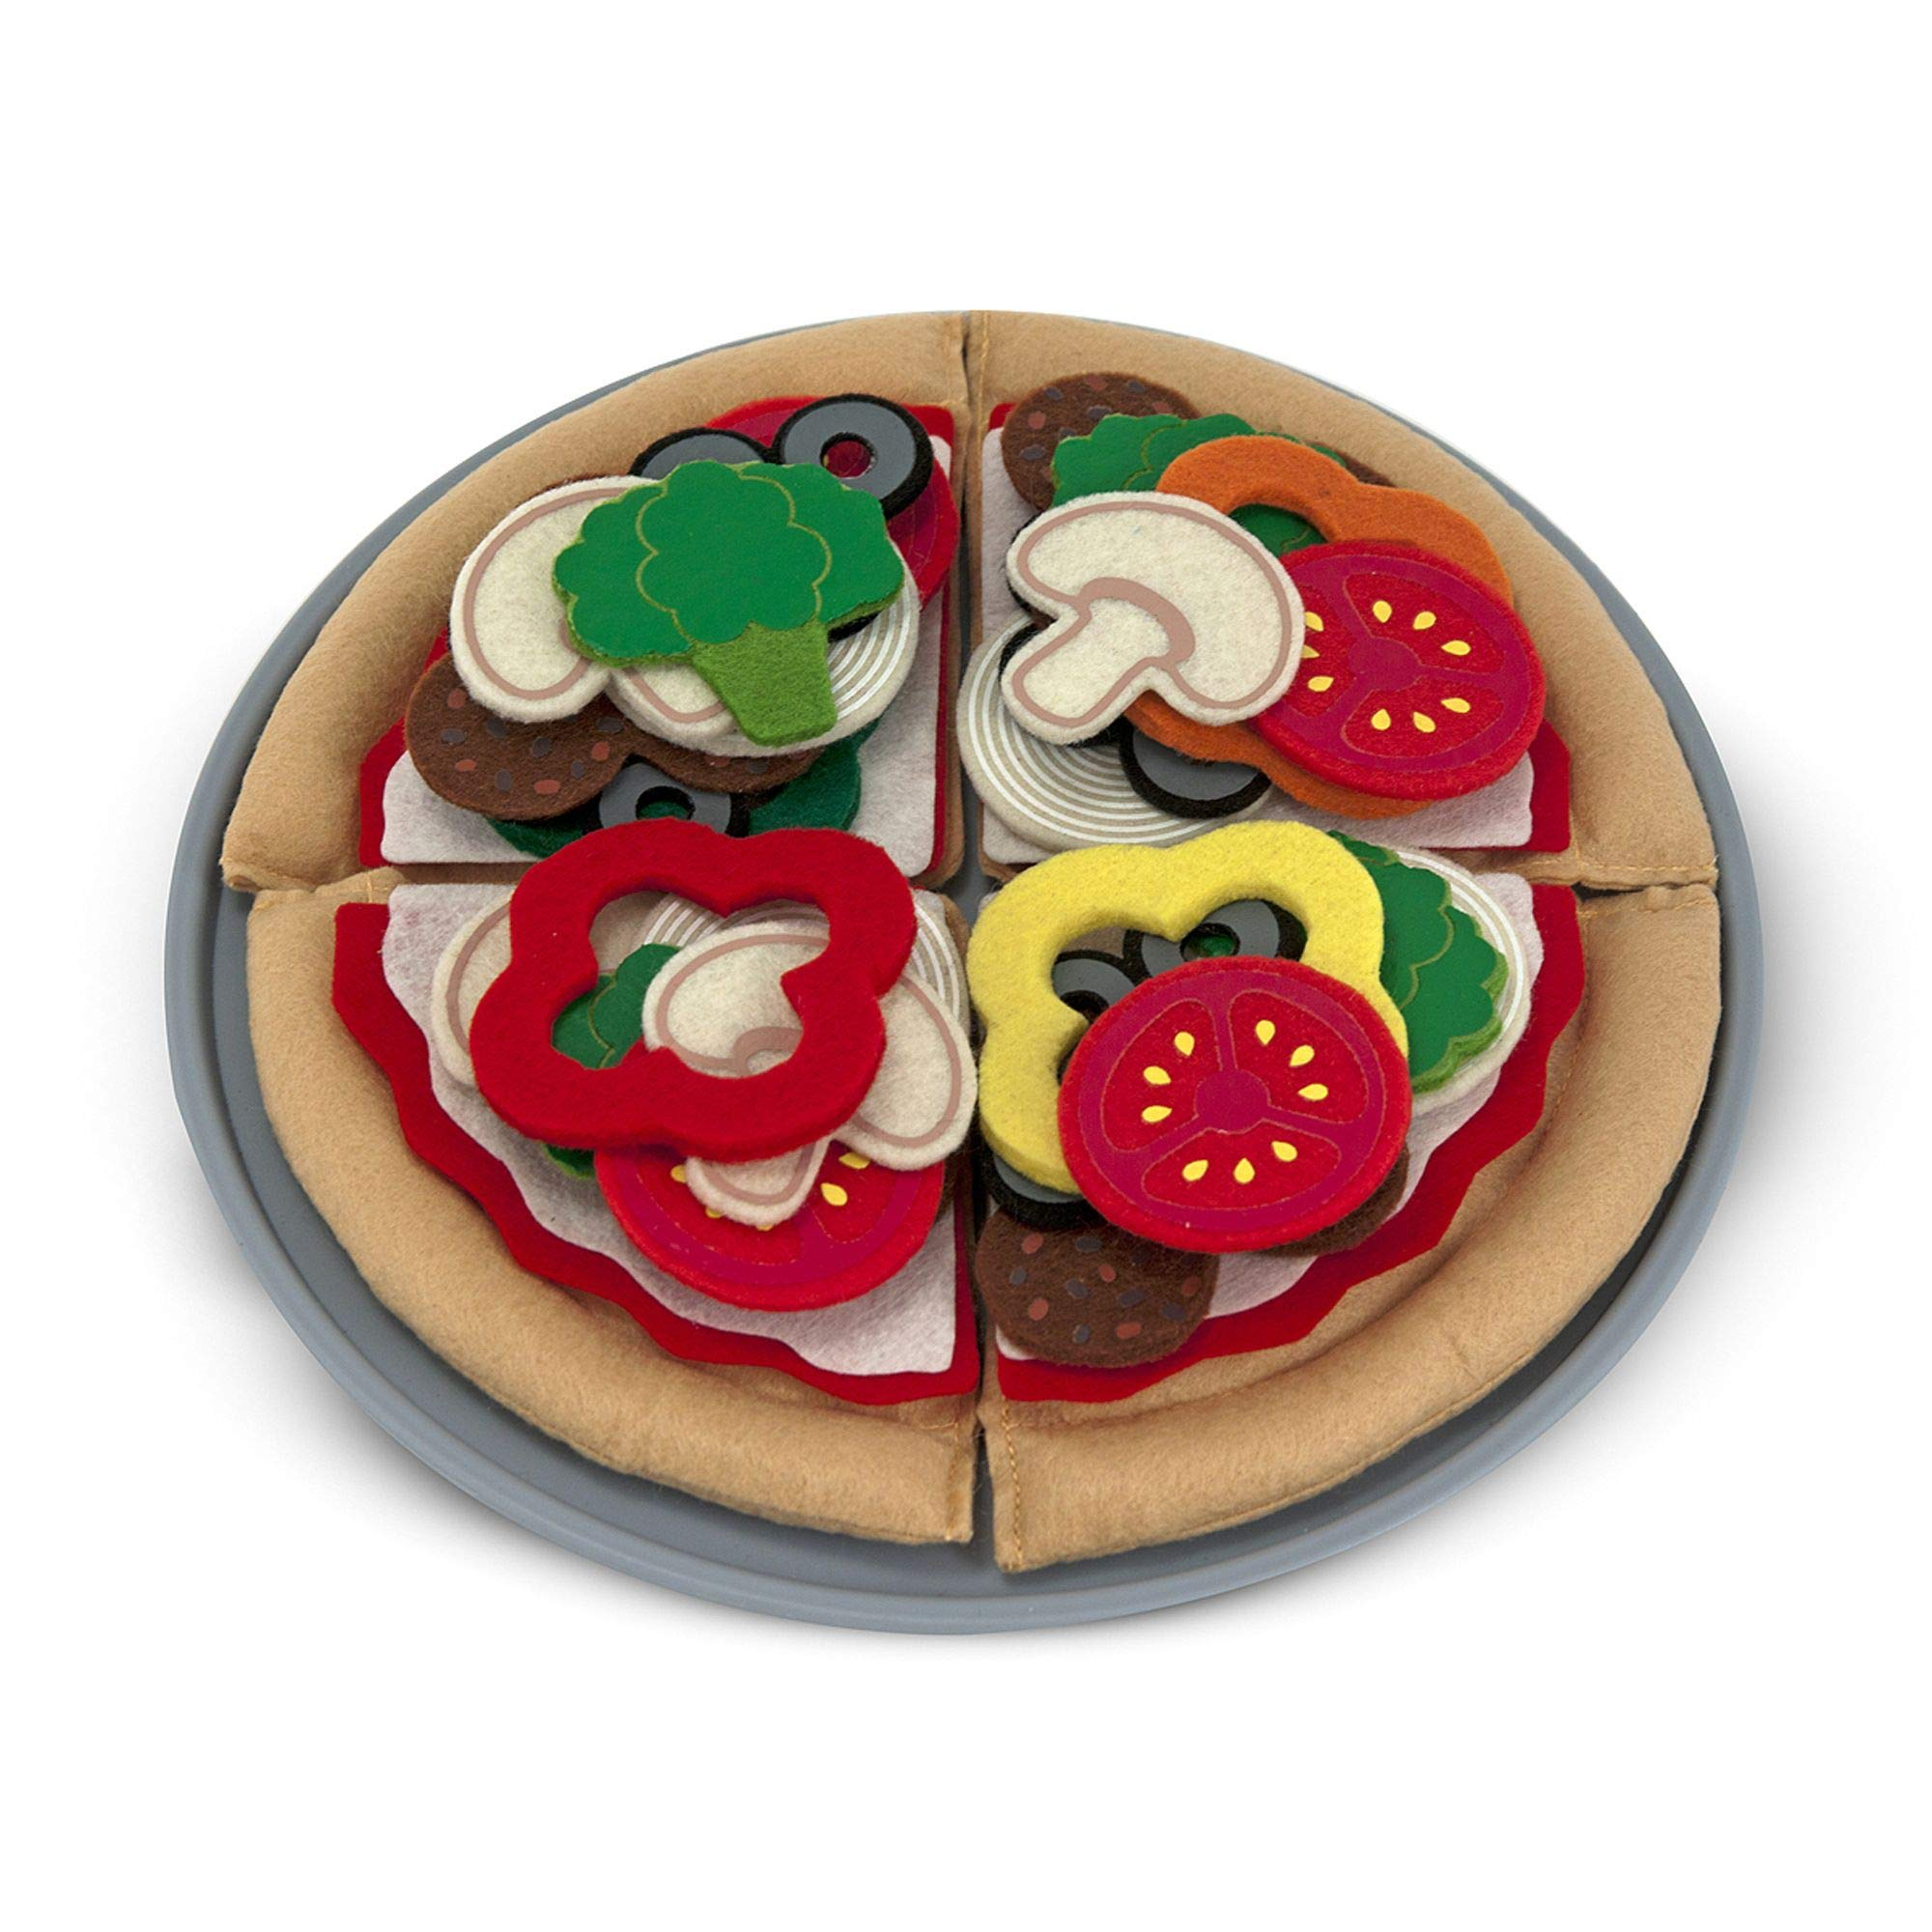 Melissa & Doug Felt Play Food Pizza Set (Pretend Play, Easy to Clean, Includes Play Ideas, 42 Durable Pieces, Great Gift for Girls and Boys - Best for 3, 4, 5, 6, and 7 Year Olds) by Melissa & Doug